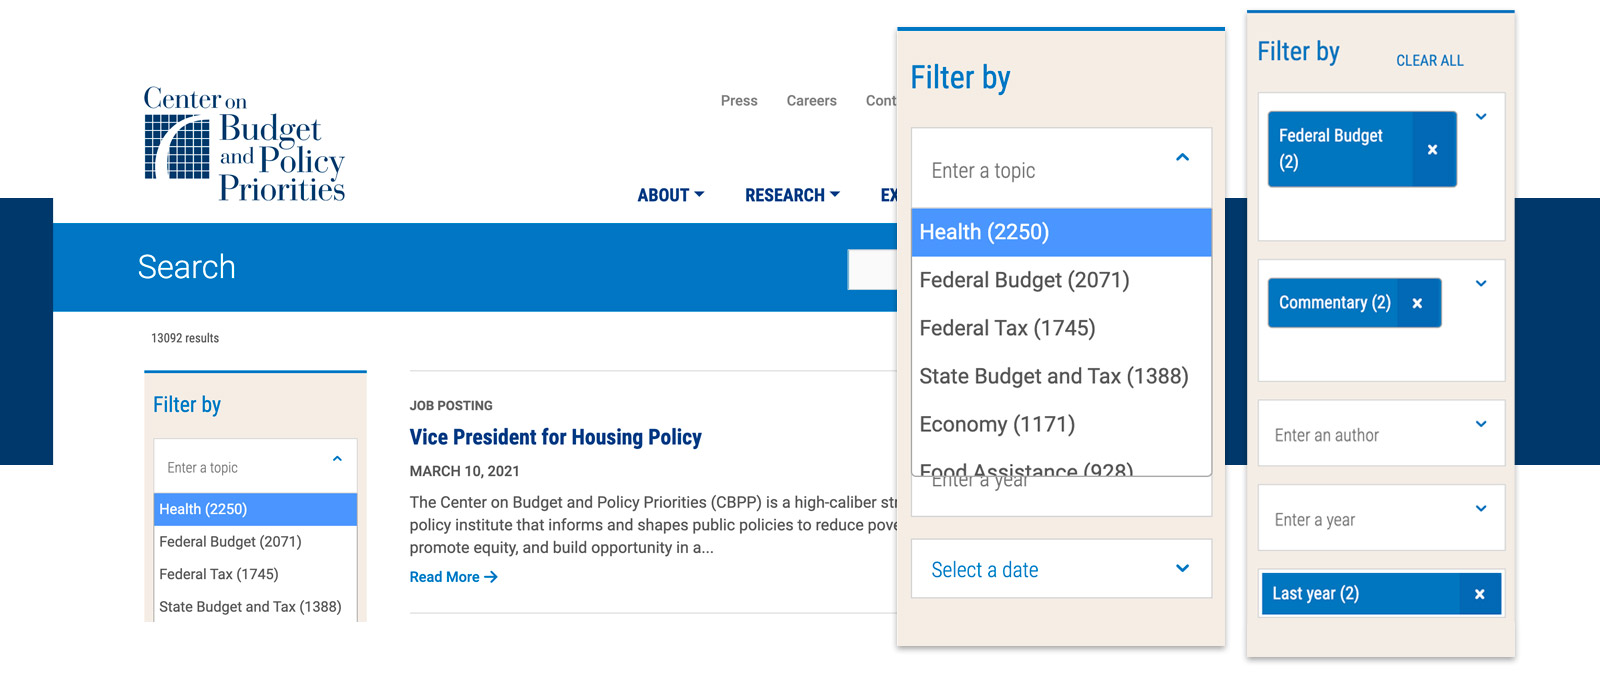 A snapshot of the Provider landing page in TCP's website